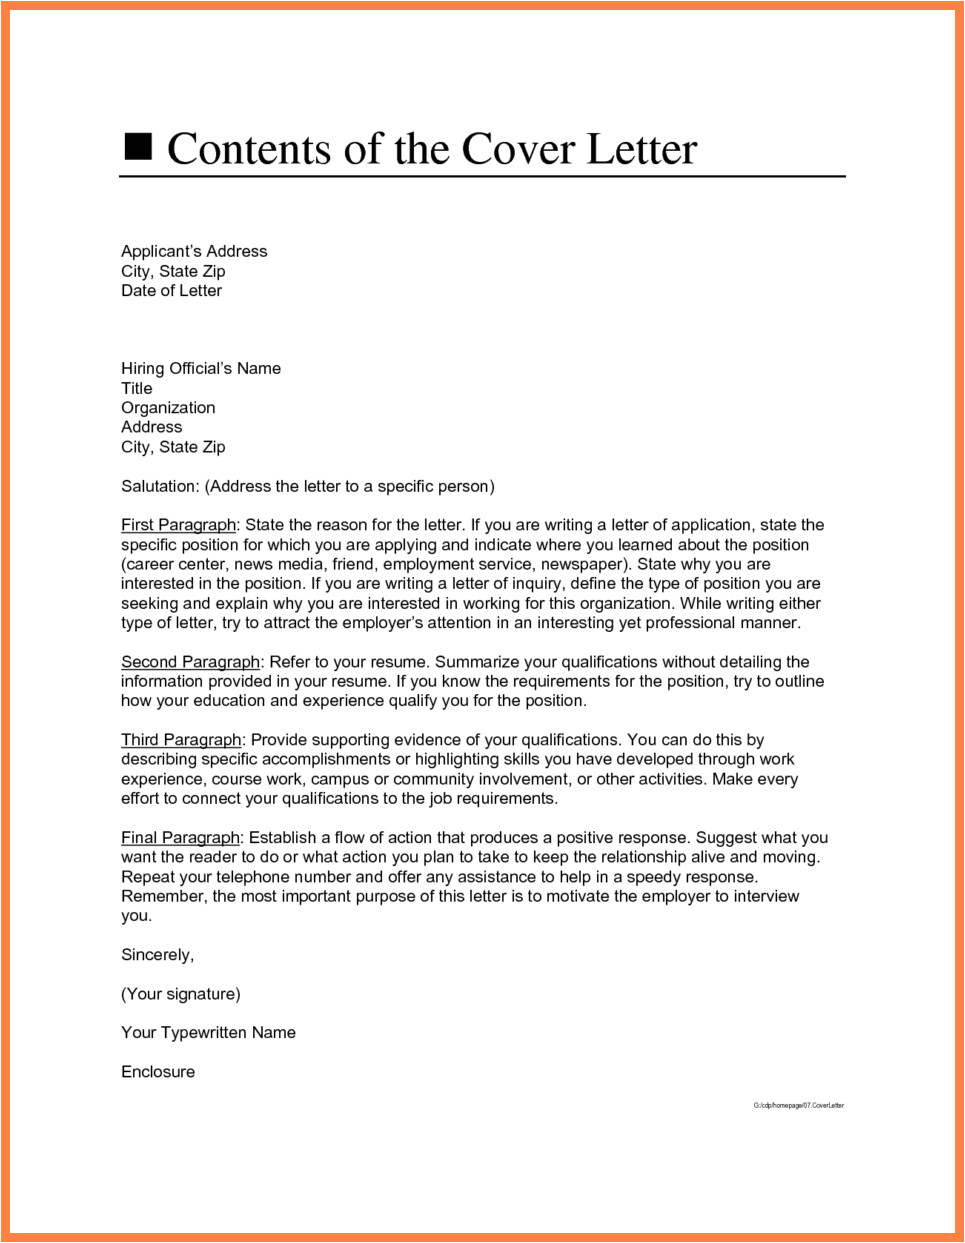 What to Name Your Cover Letter 5 Cover Letter Address Marital Settlements Information